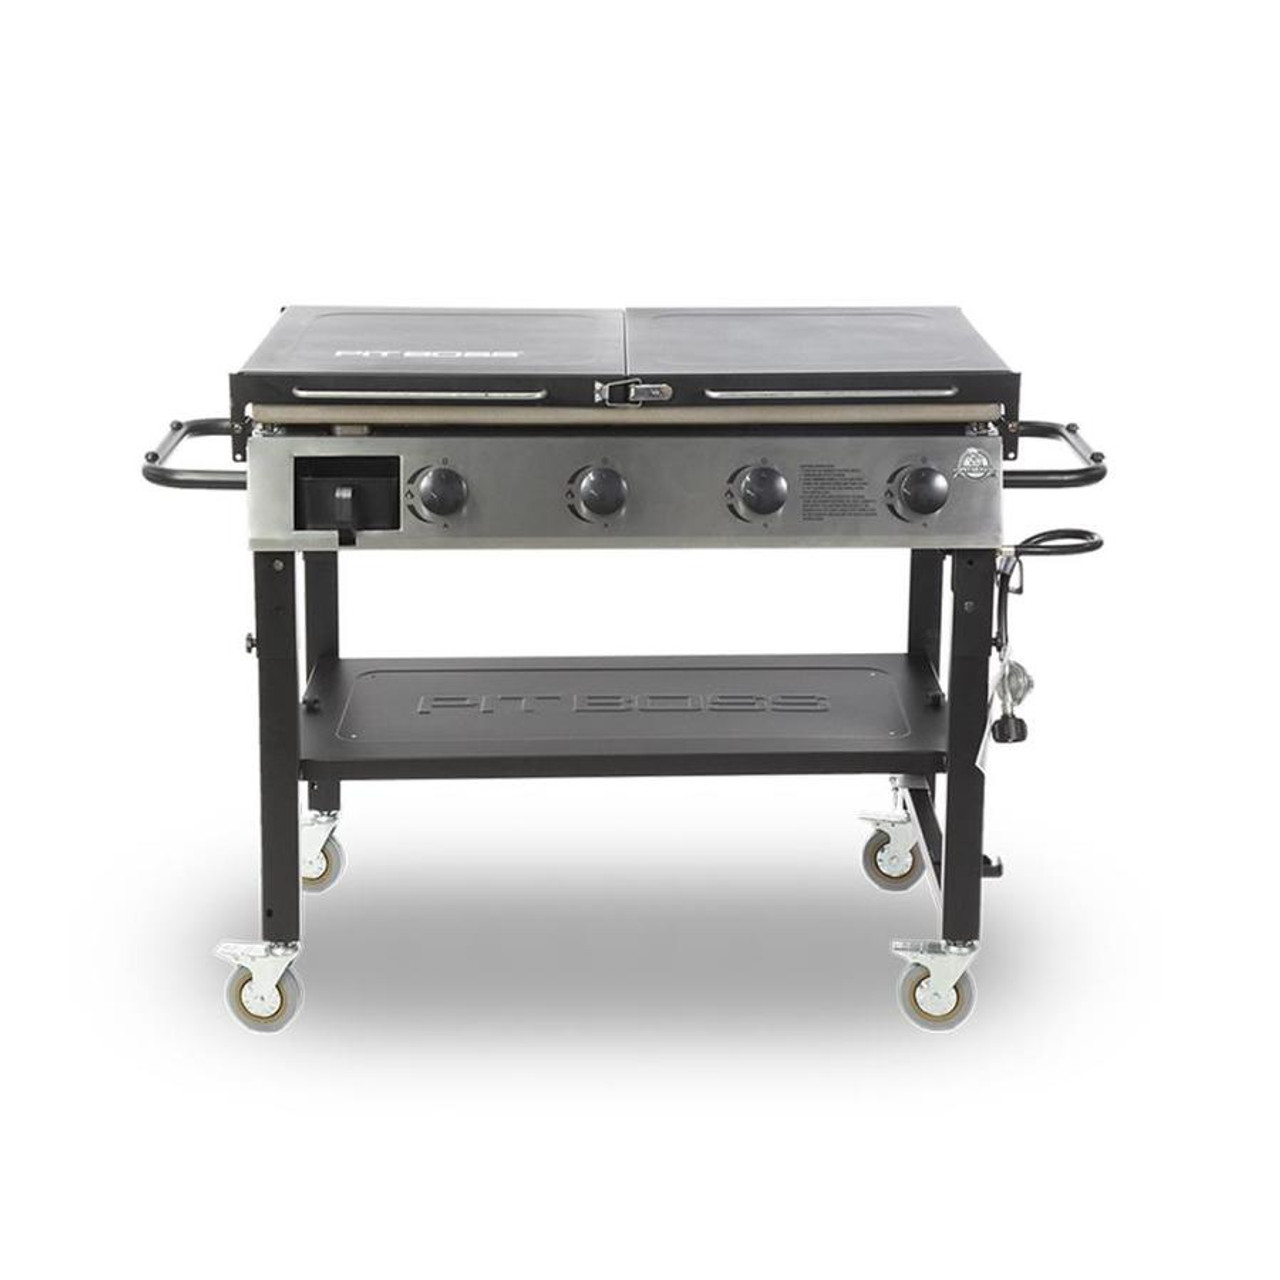 PIT BOSS DELUXE GRIDDLE 4 BURNER WITH FOLDABLE SHELVES PBGDL0757AD10555